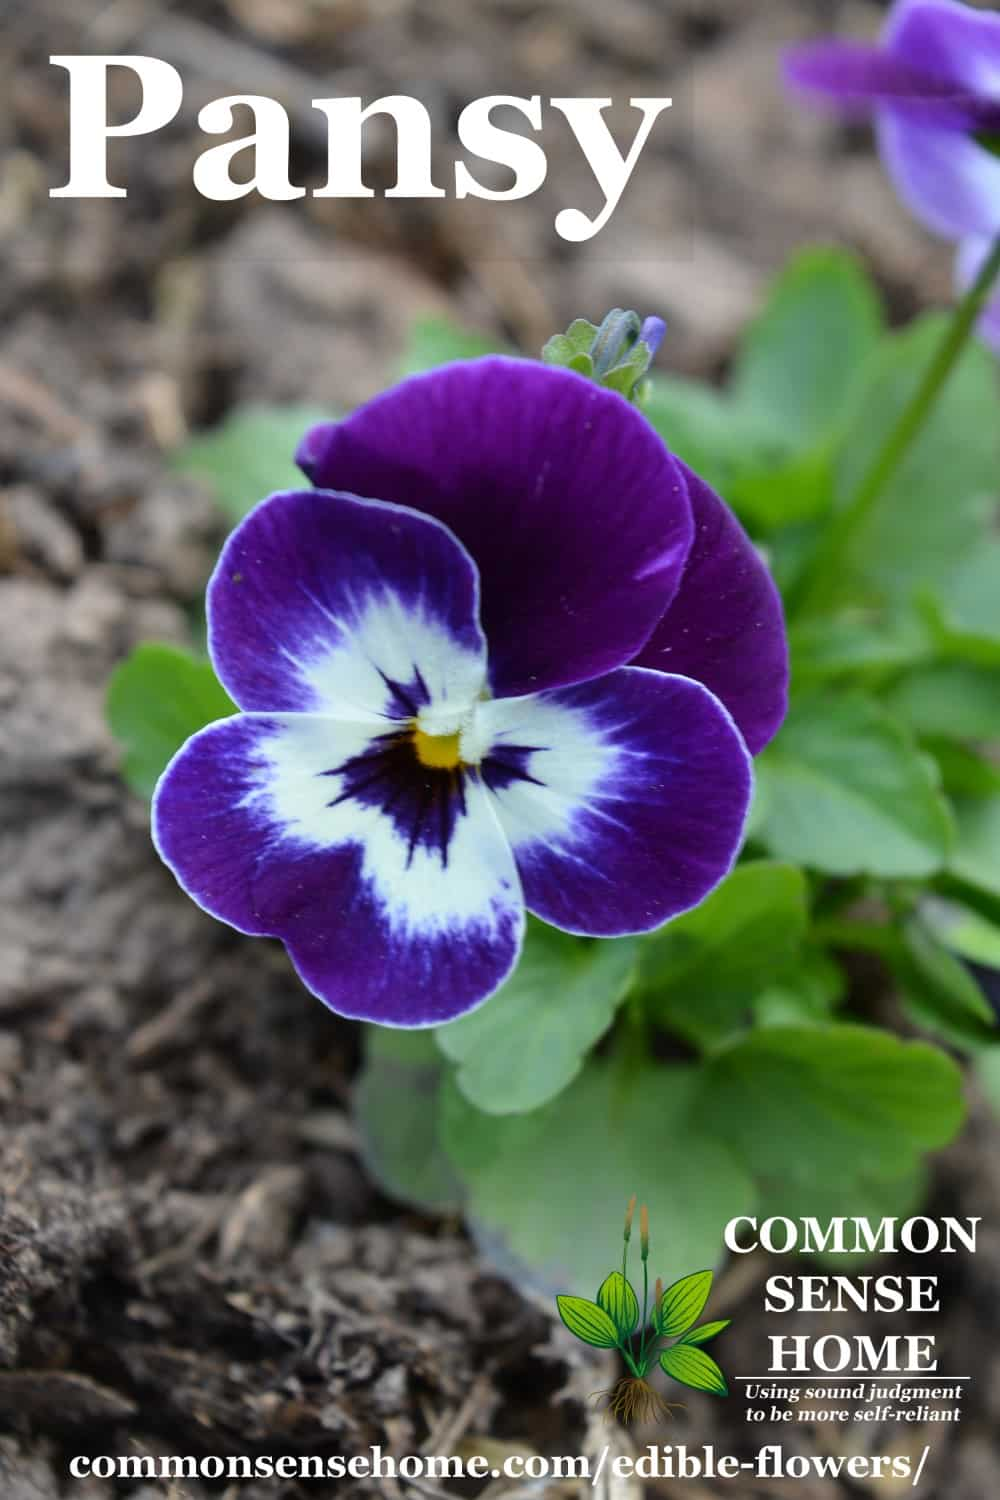 edible flowers - pansies - purple pansy with green leaves against dark soil